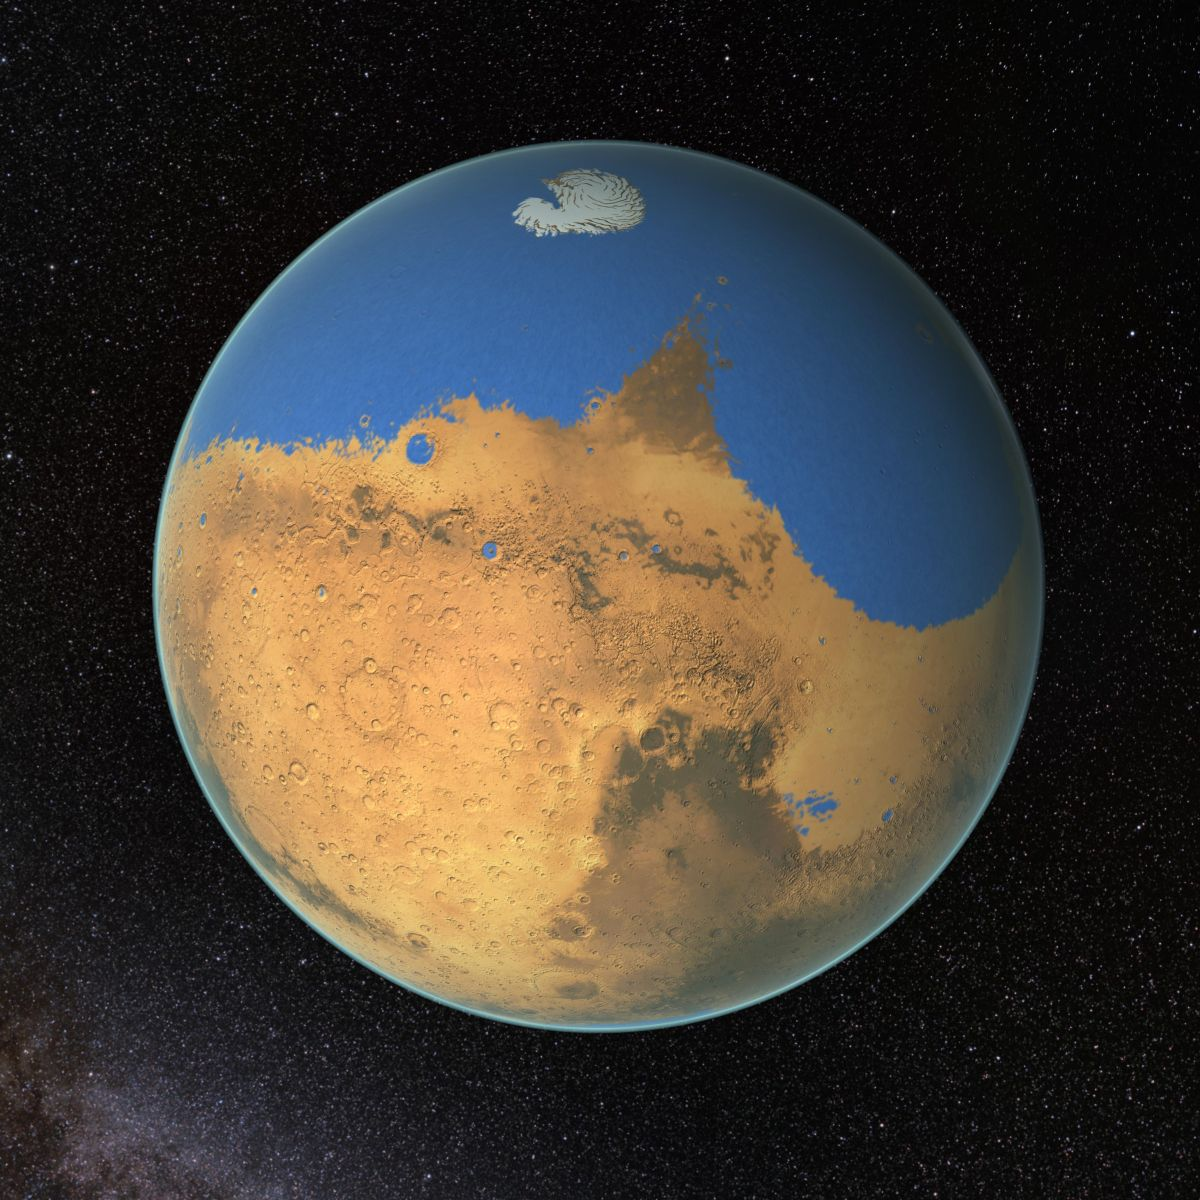 Rare Meteorites May Have Formed During Large Impact on Wet Mars - Space.com